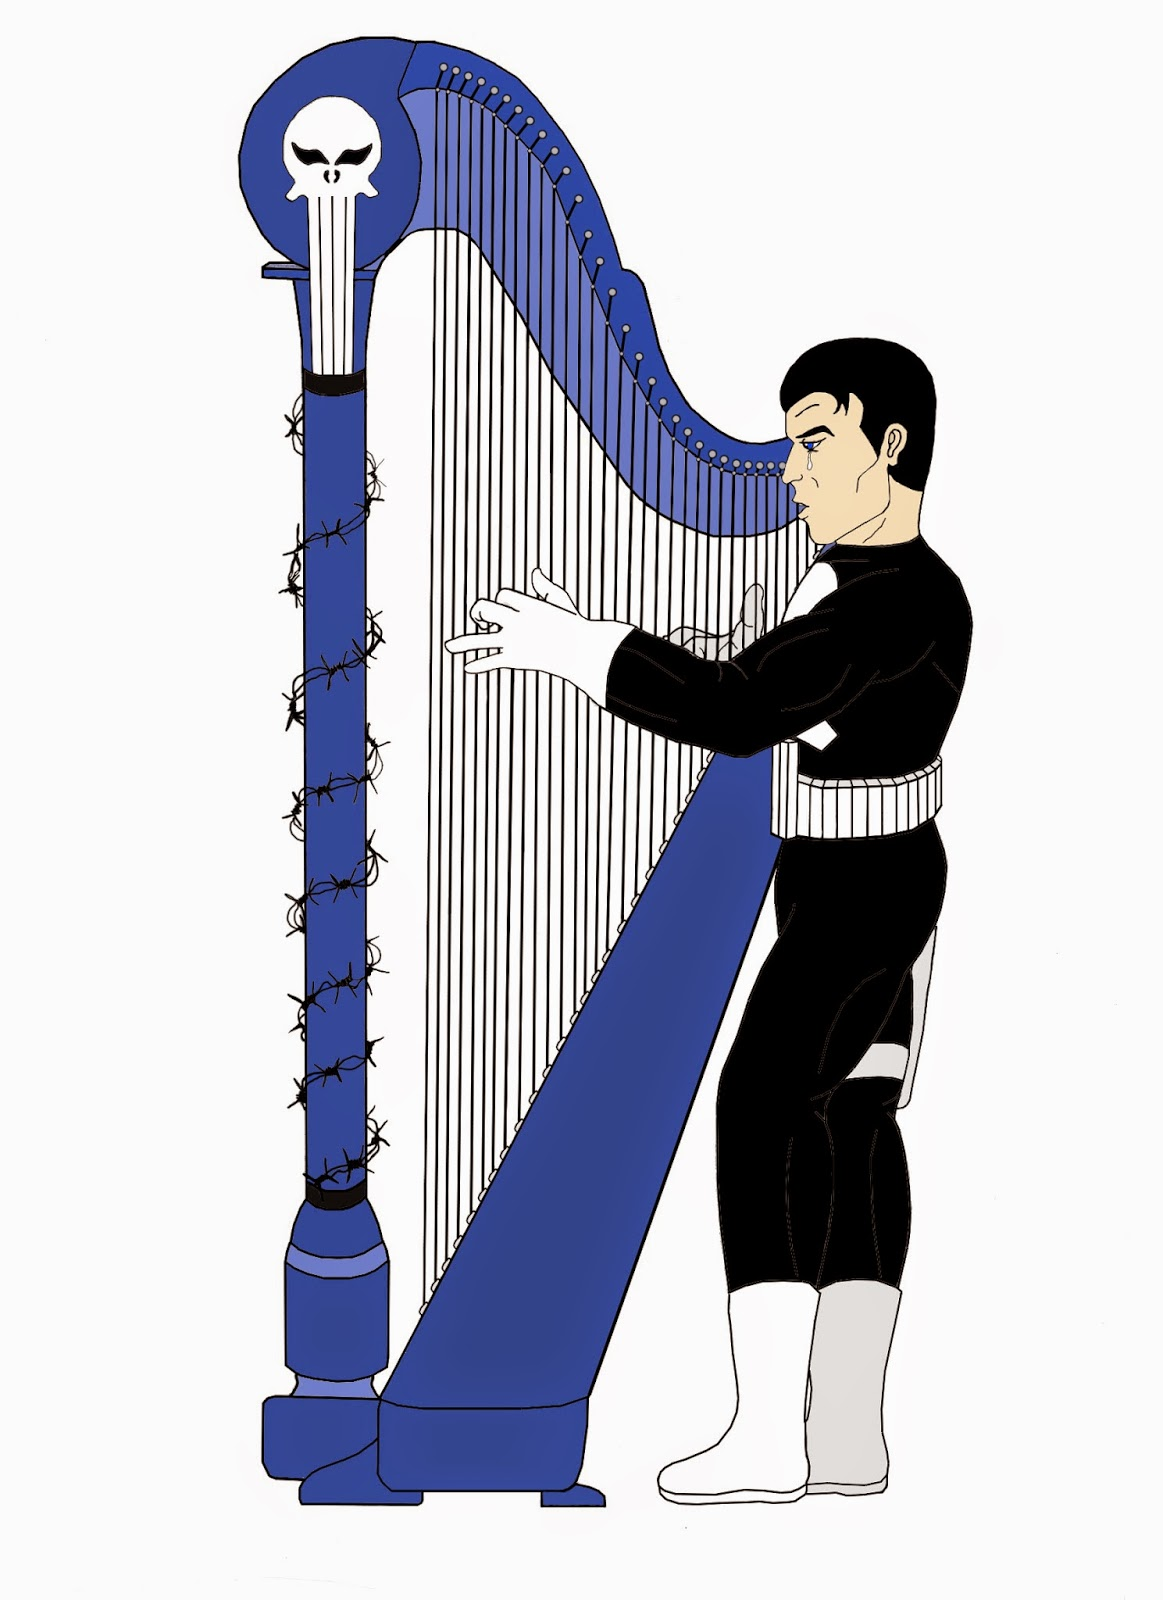 Classic Punisher playing the harp.